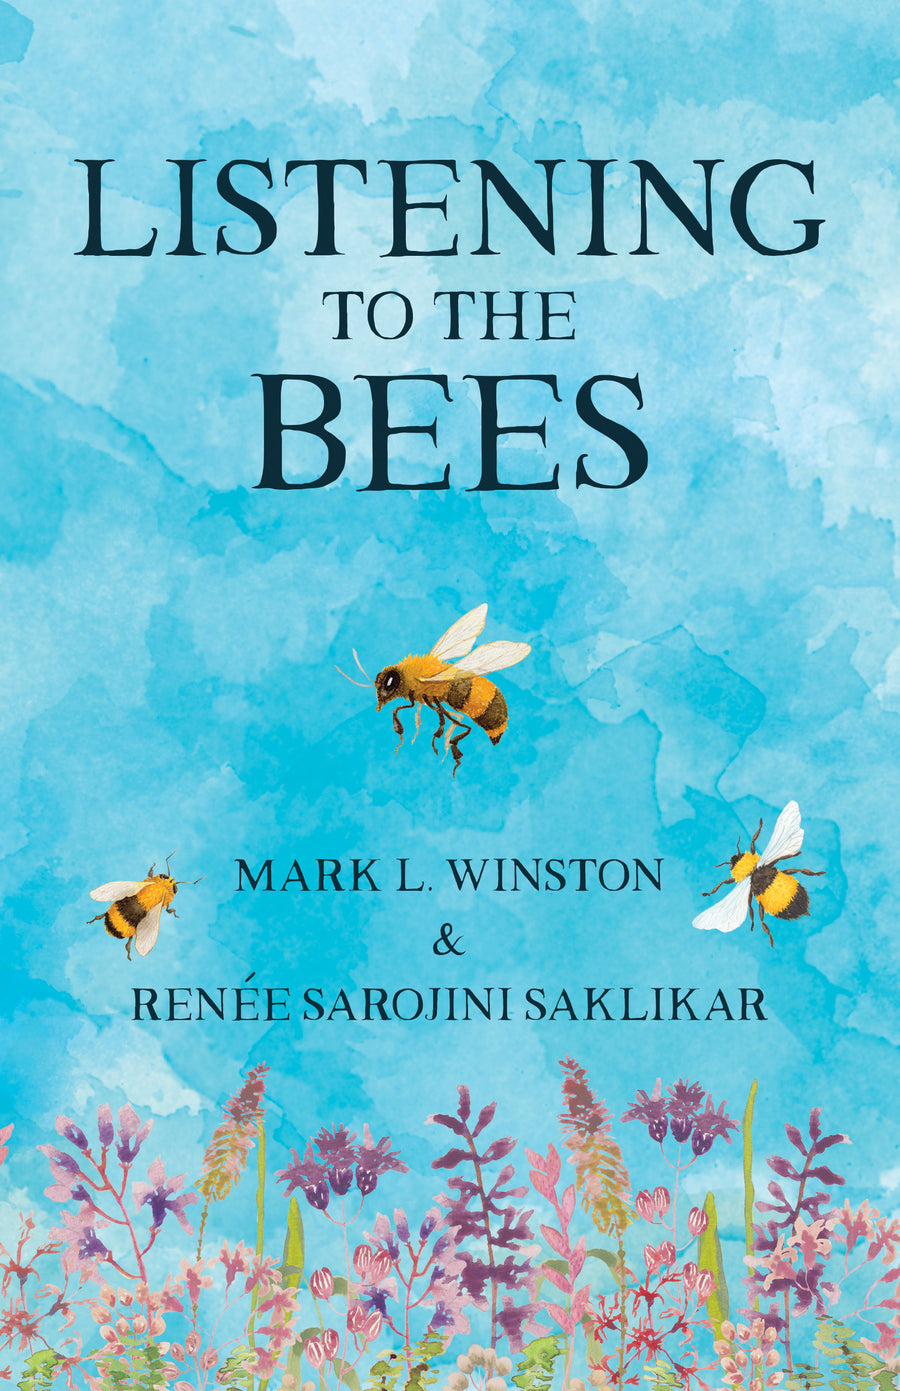 Listening to the Bees